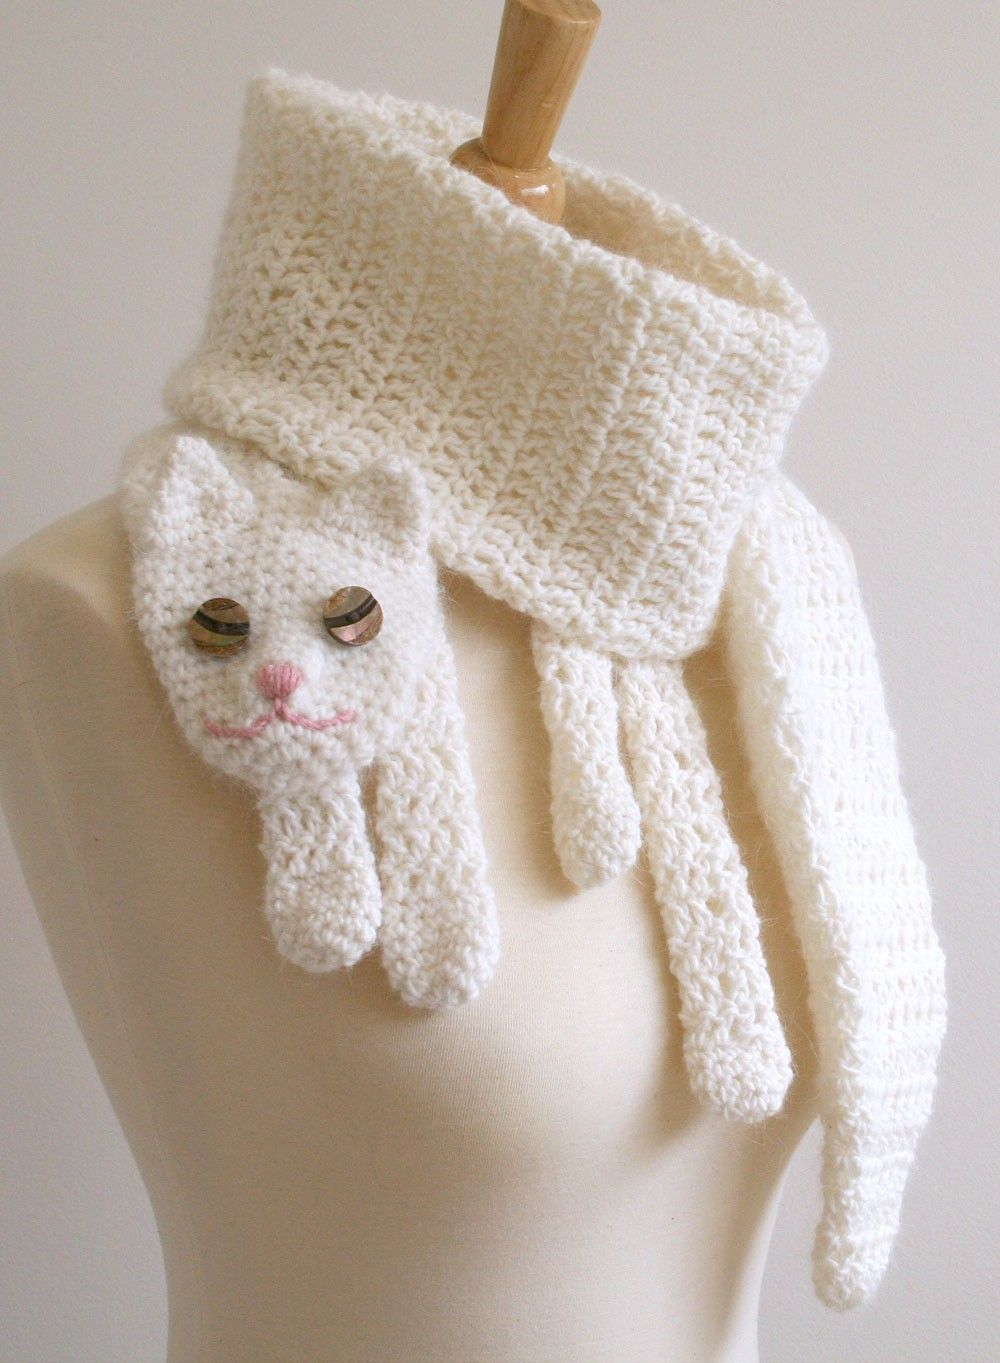 Poesjessjaal | Craft ideas | Pinterest | Cat scarf, Scarves and ...